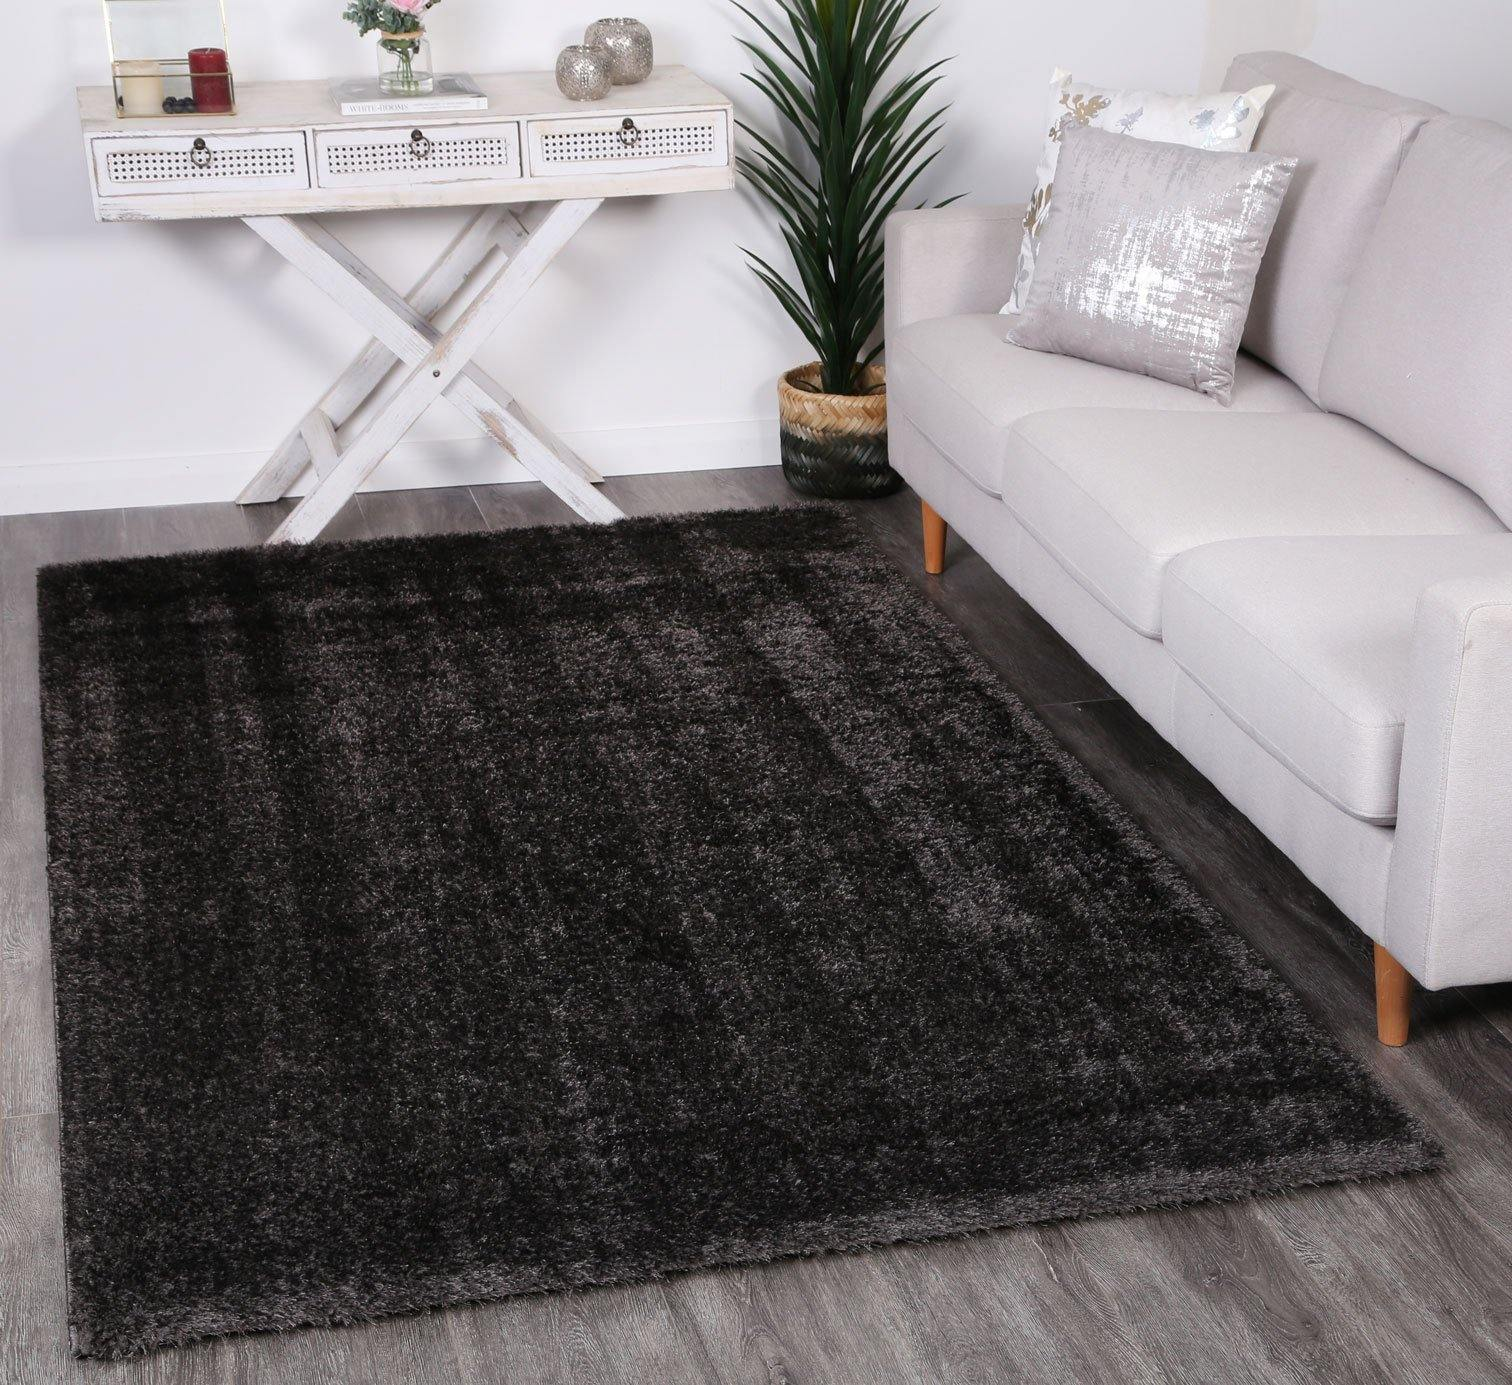 Oasis Soft Shag Anthracite Rug - The Rugs